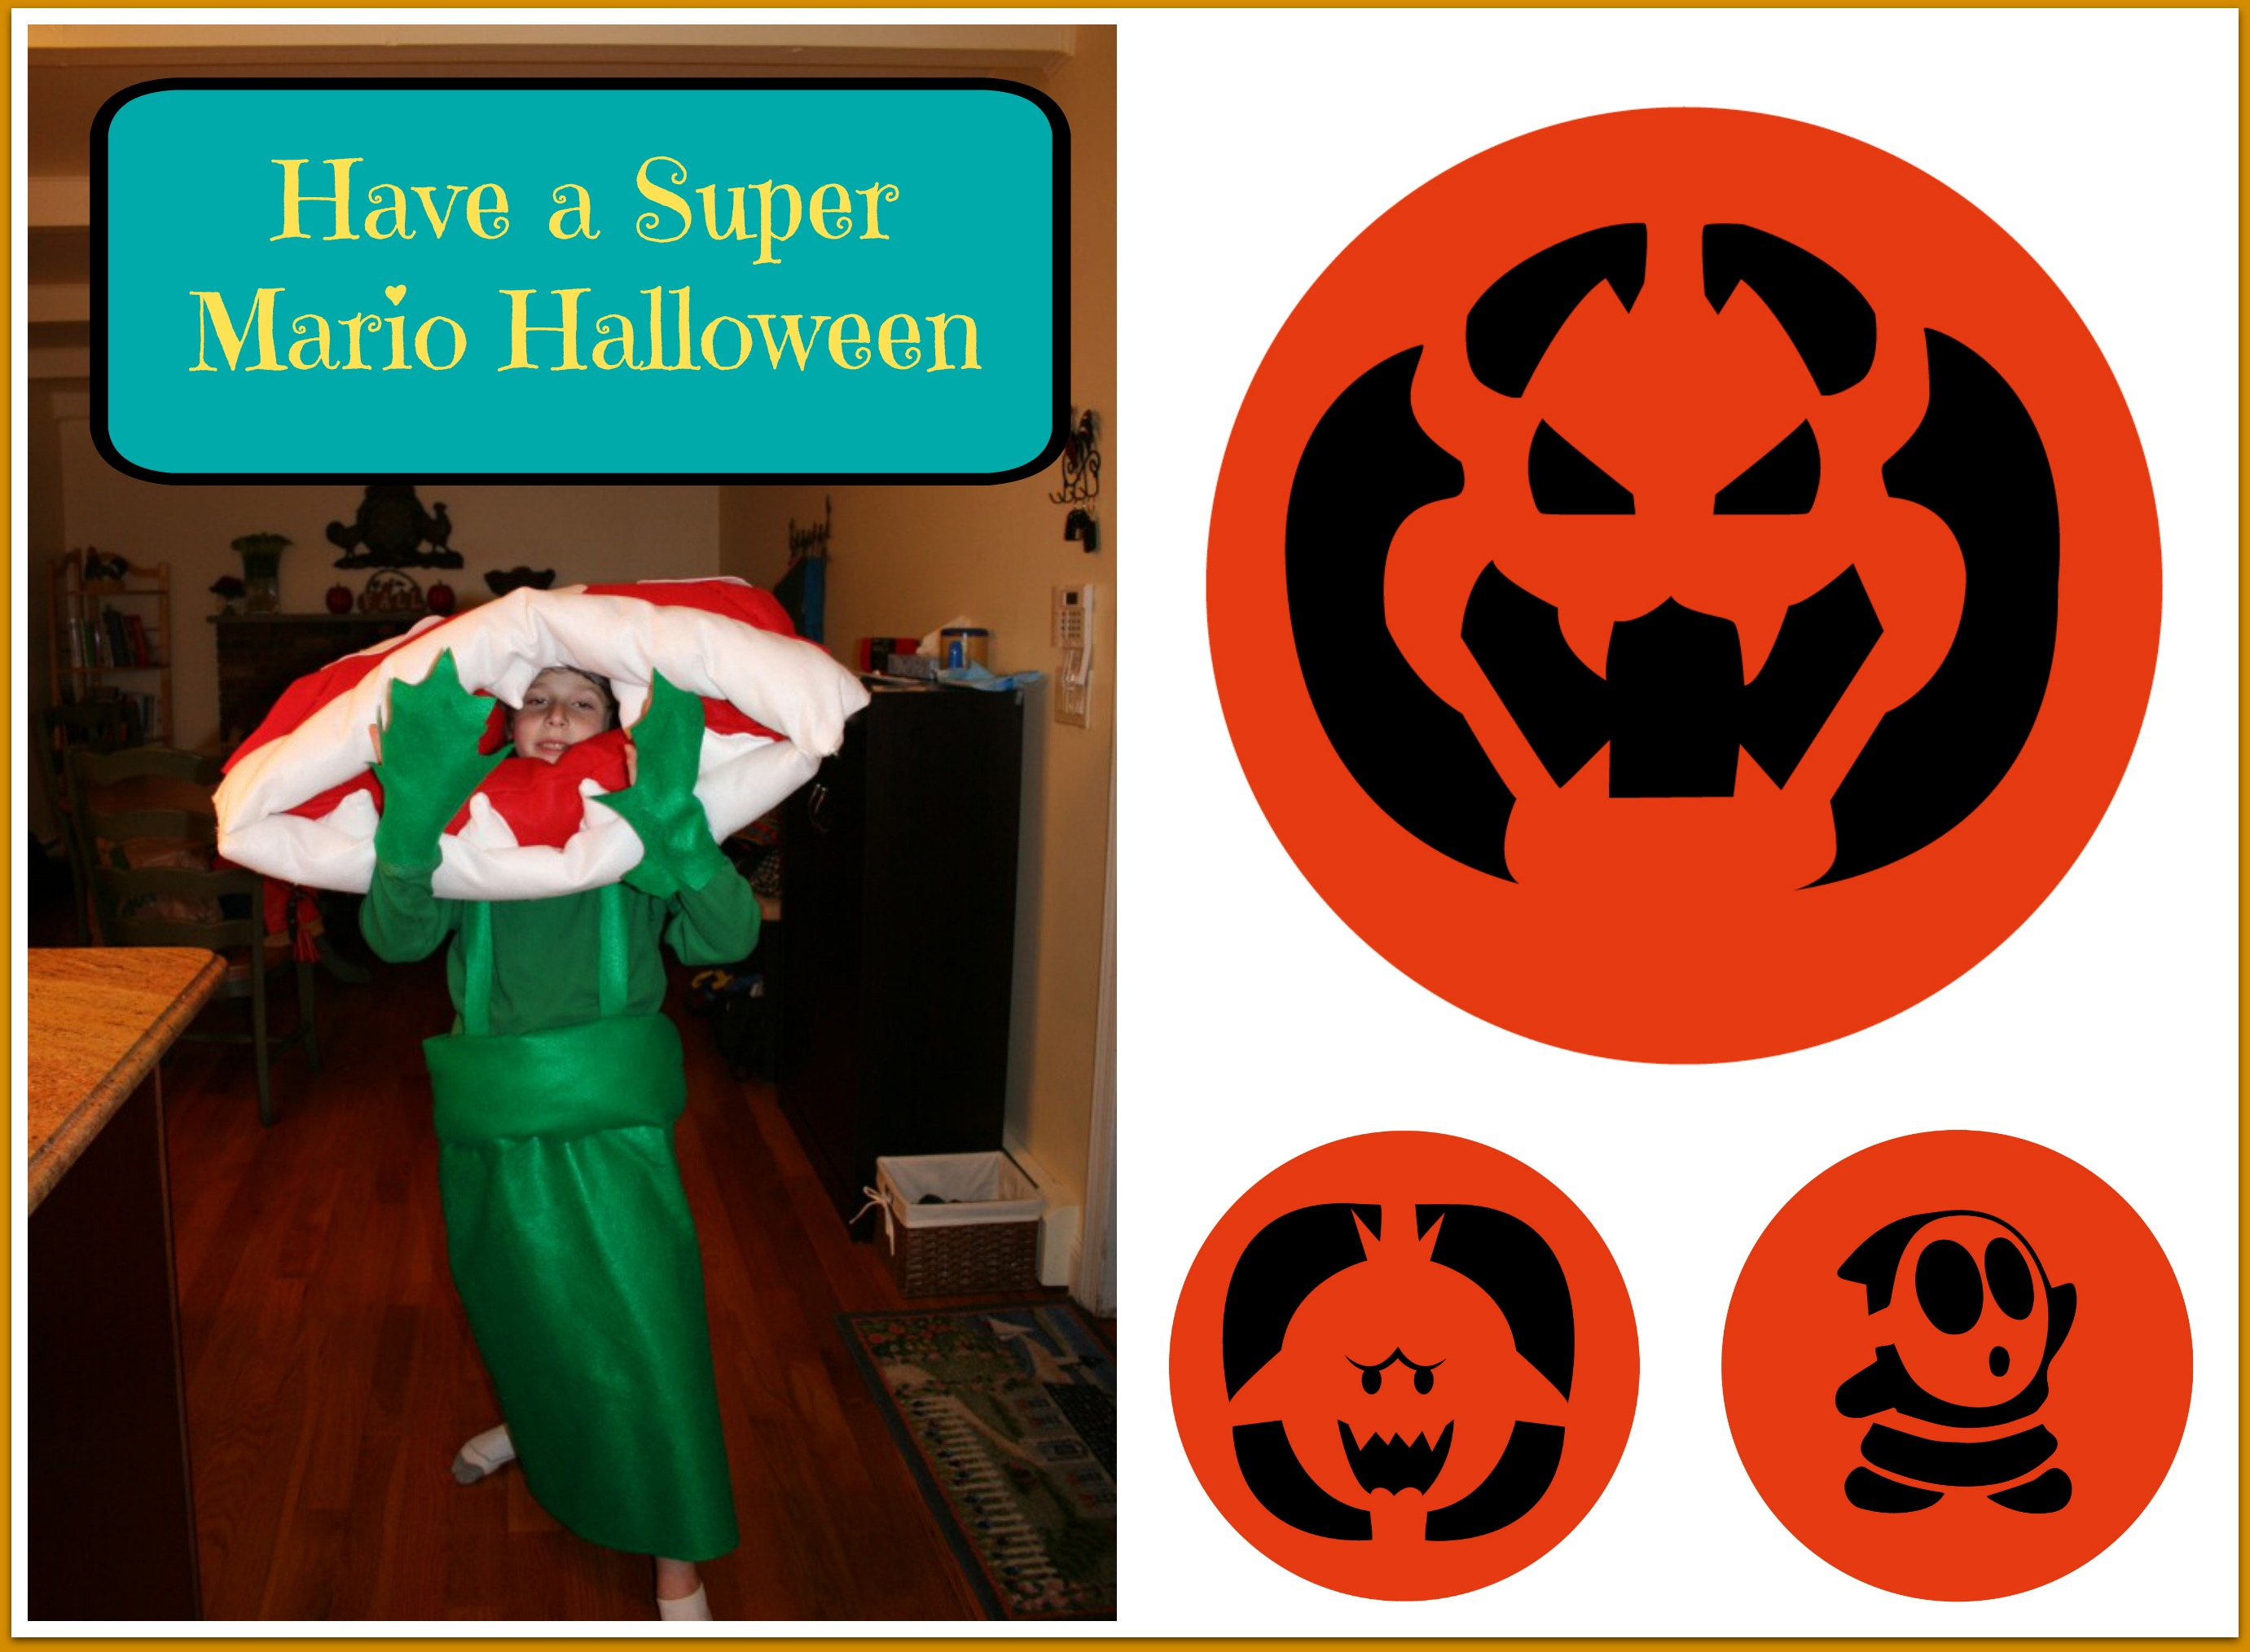 Have a Super Mario Halloween with These Pumpkin Stencils